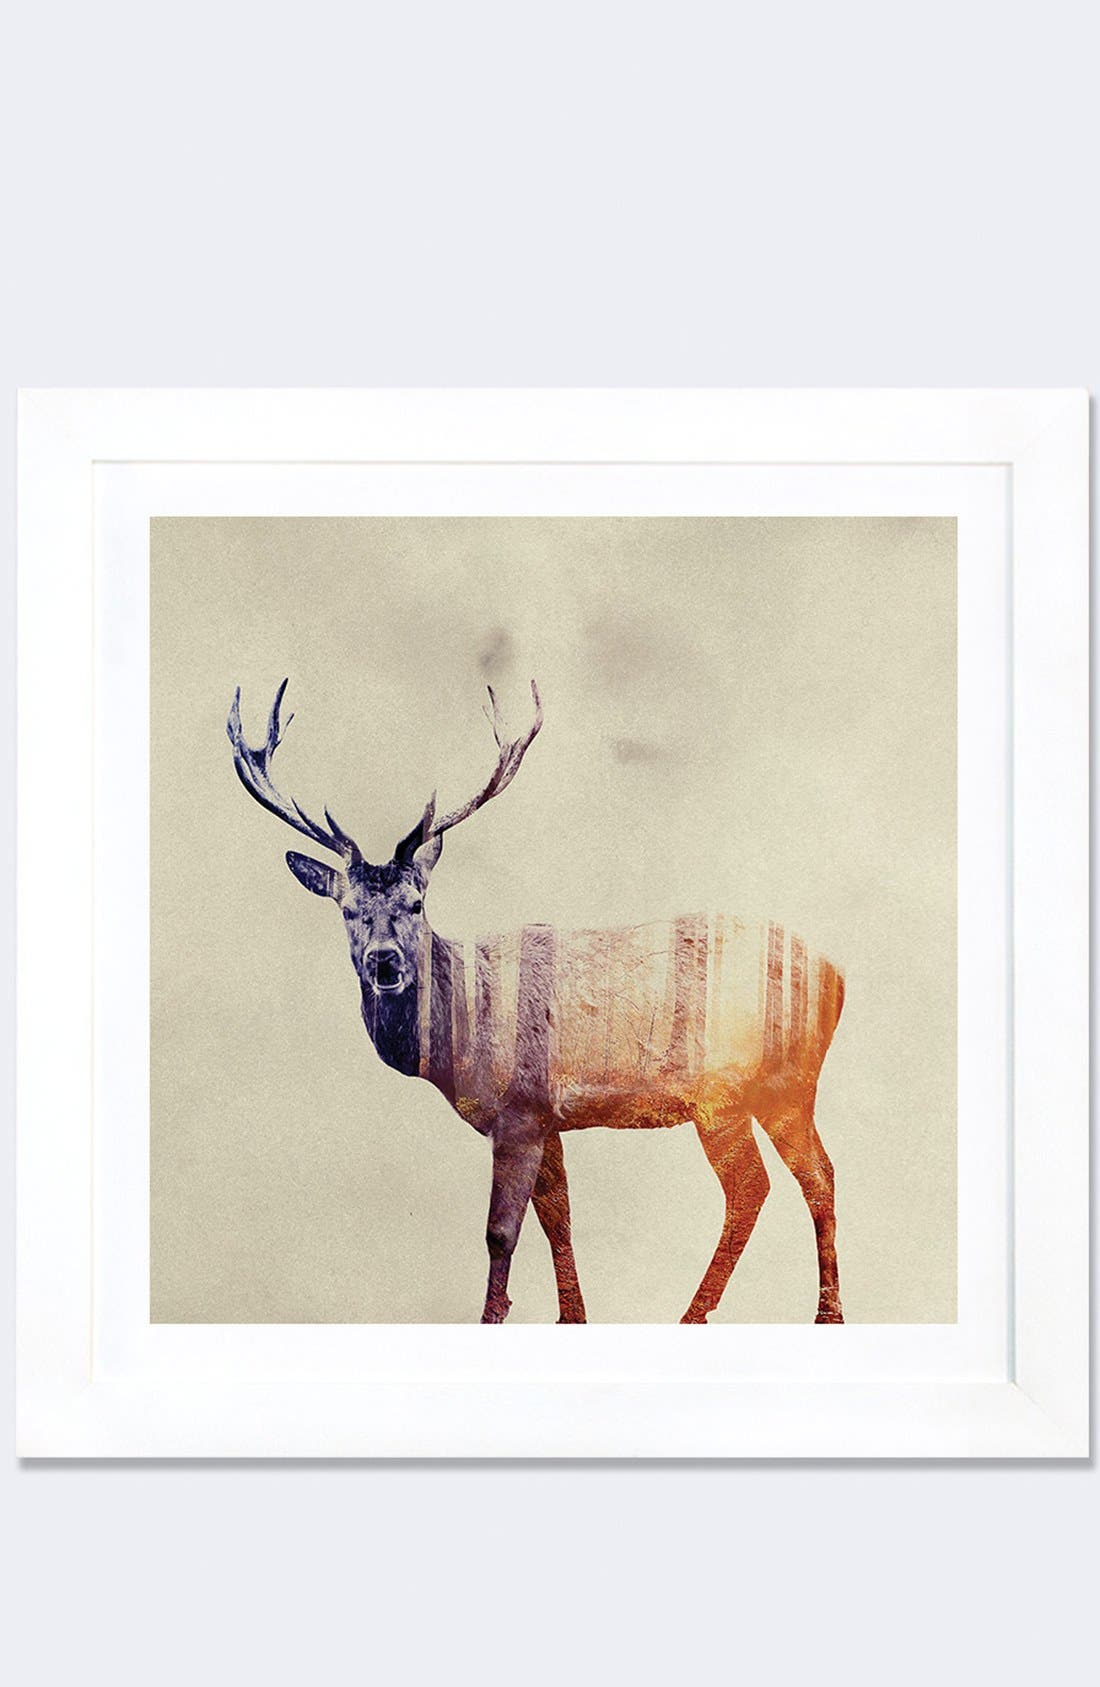 Add a striking natural accent to your living space with this stunning rendition of a stately deer, printed on archival fine-art paper with fade-resistant inks for color that stays vibrant for decades. An Indonesian hardwood frame makes a stylish display. Style Name: Icanvas \\\'Deer\\\' Framed Paper Print. Style Number: 5112552. Available in stores.